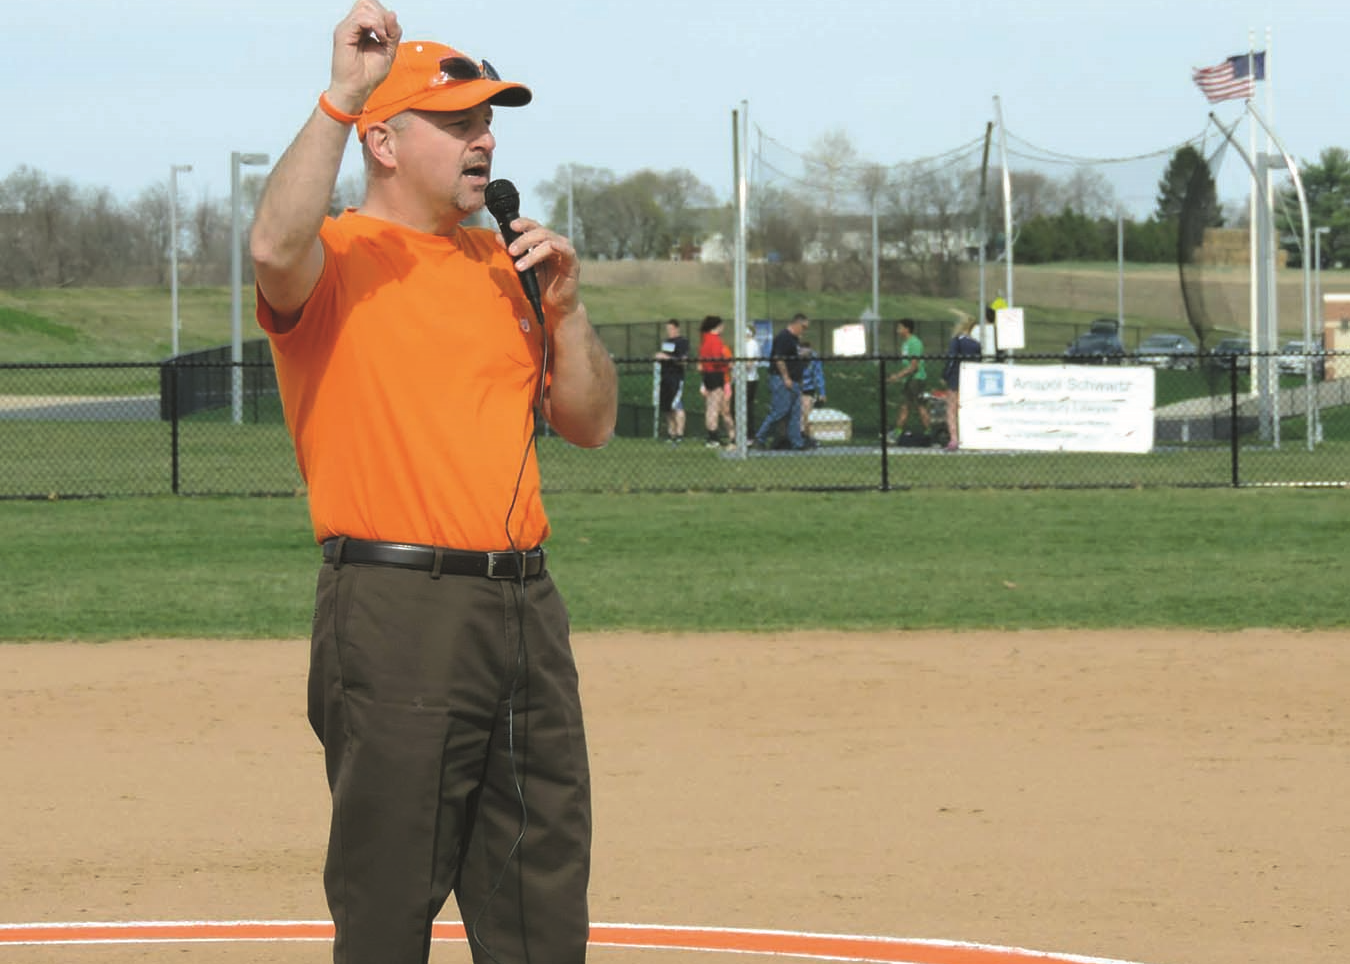 Mark Brezitski speaks about Owen's Foundation at a local softball game in Owen's honor.